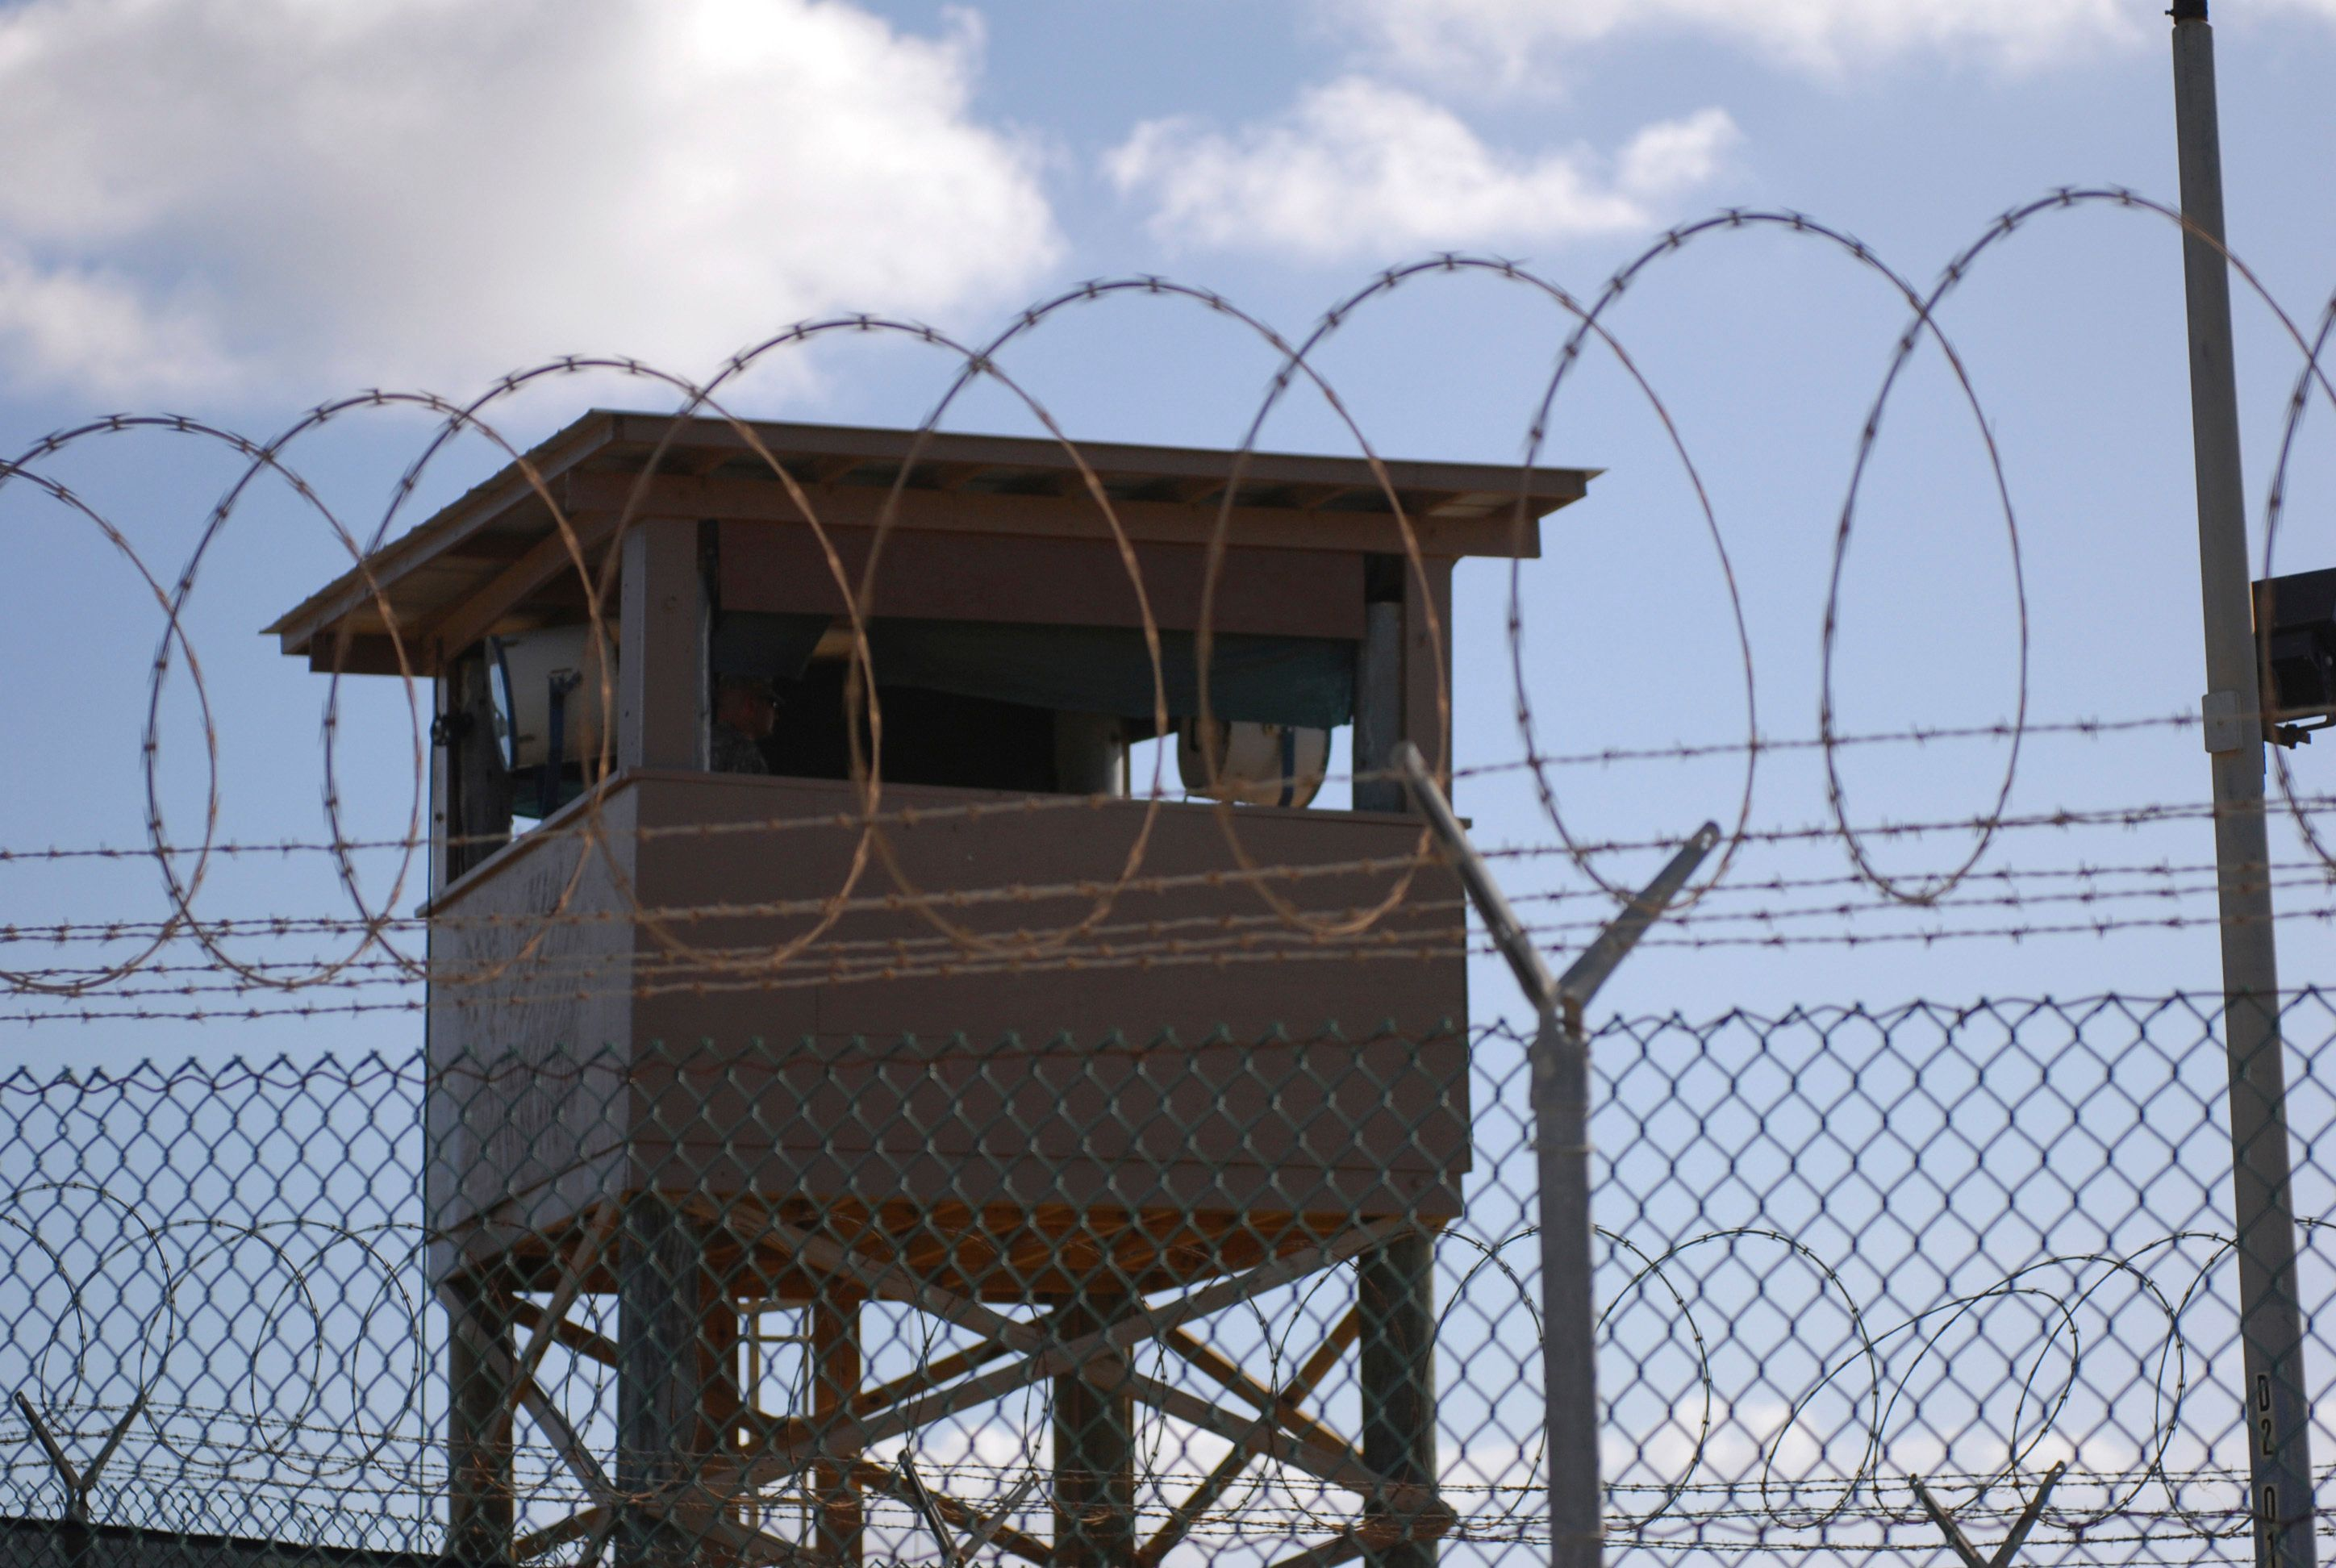 United States transfers first detainee out of Guantanamo under Trump